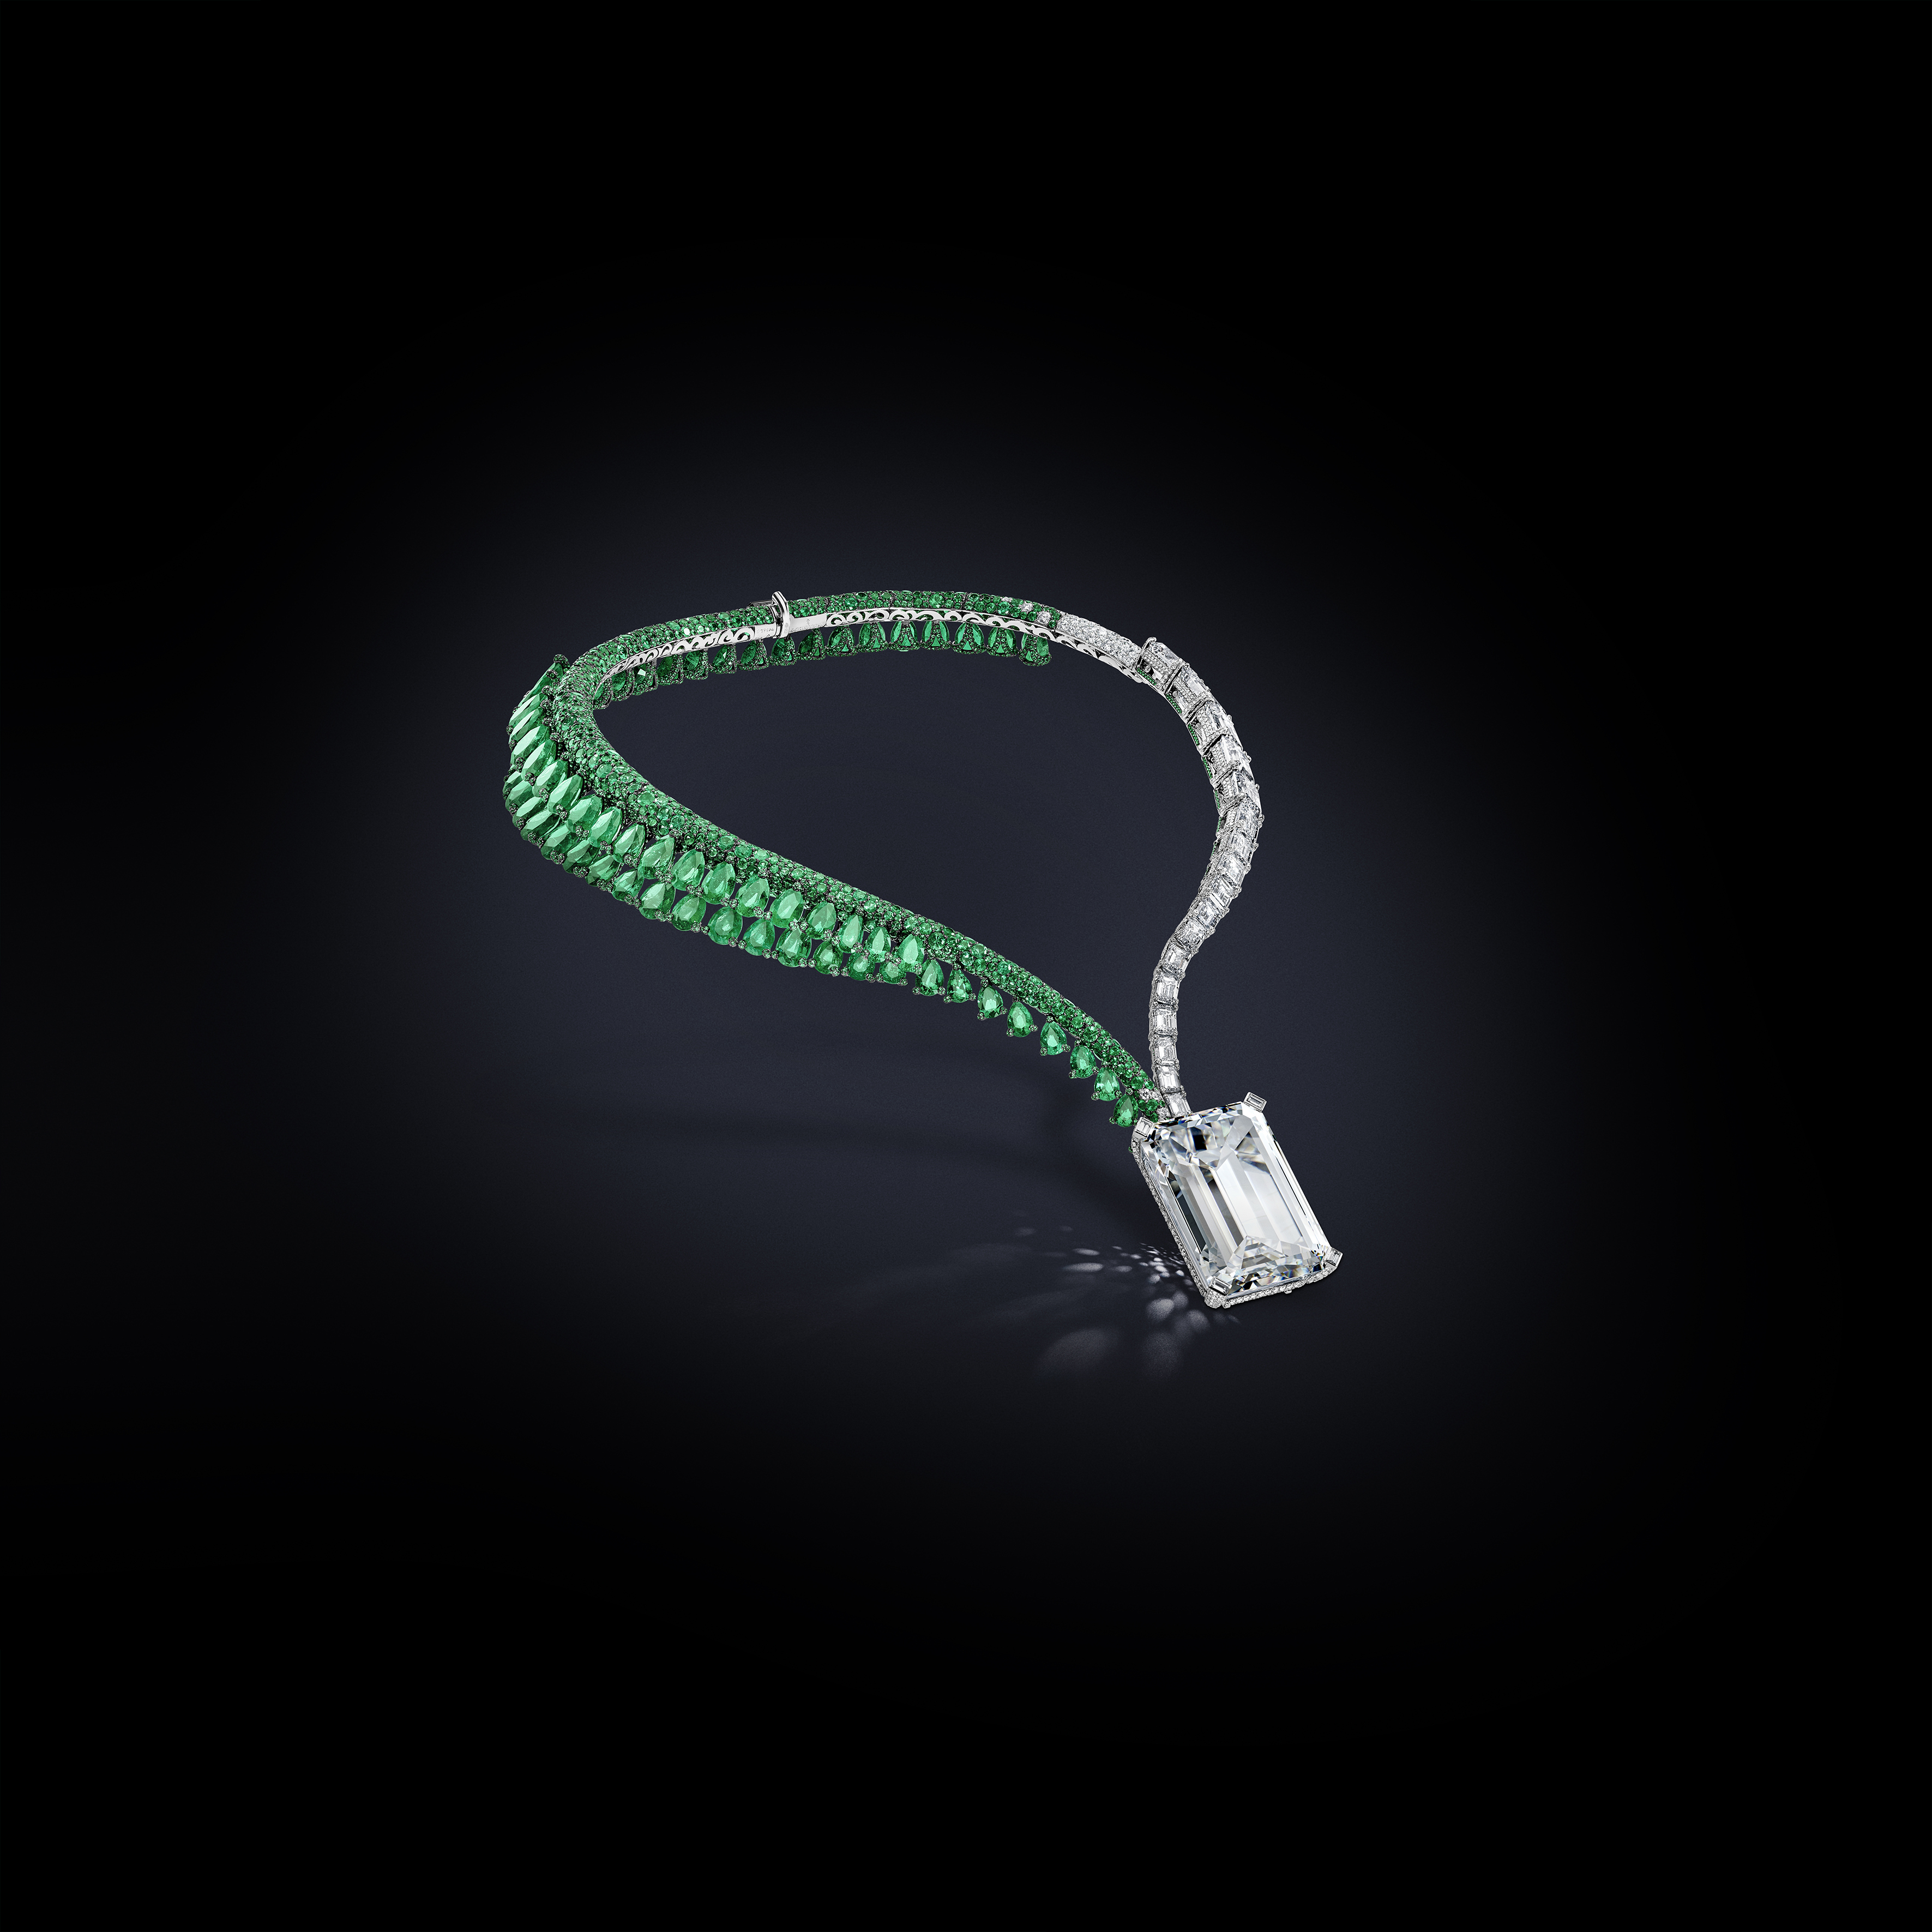 """Jeweler De Grisogrono unveiled its """"Creation I,"""" a necklace featuring a 163.41-carat D-Color Type IIA diamond of Flawless clarity. The necklace will be sold at Christie's in Geneva on Nov. 14."""